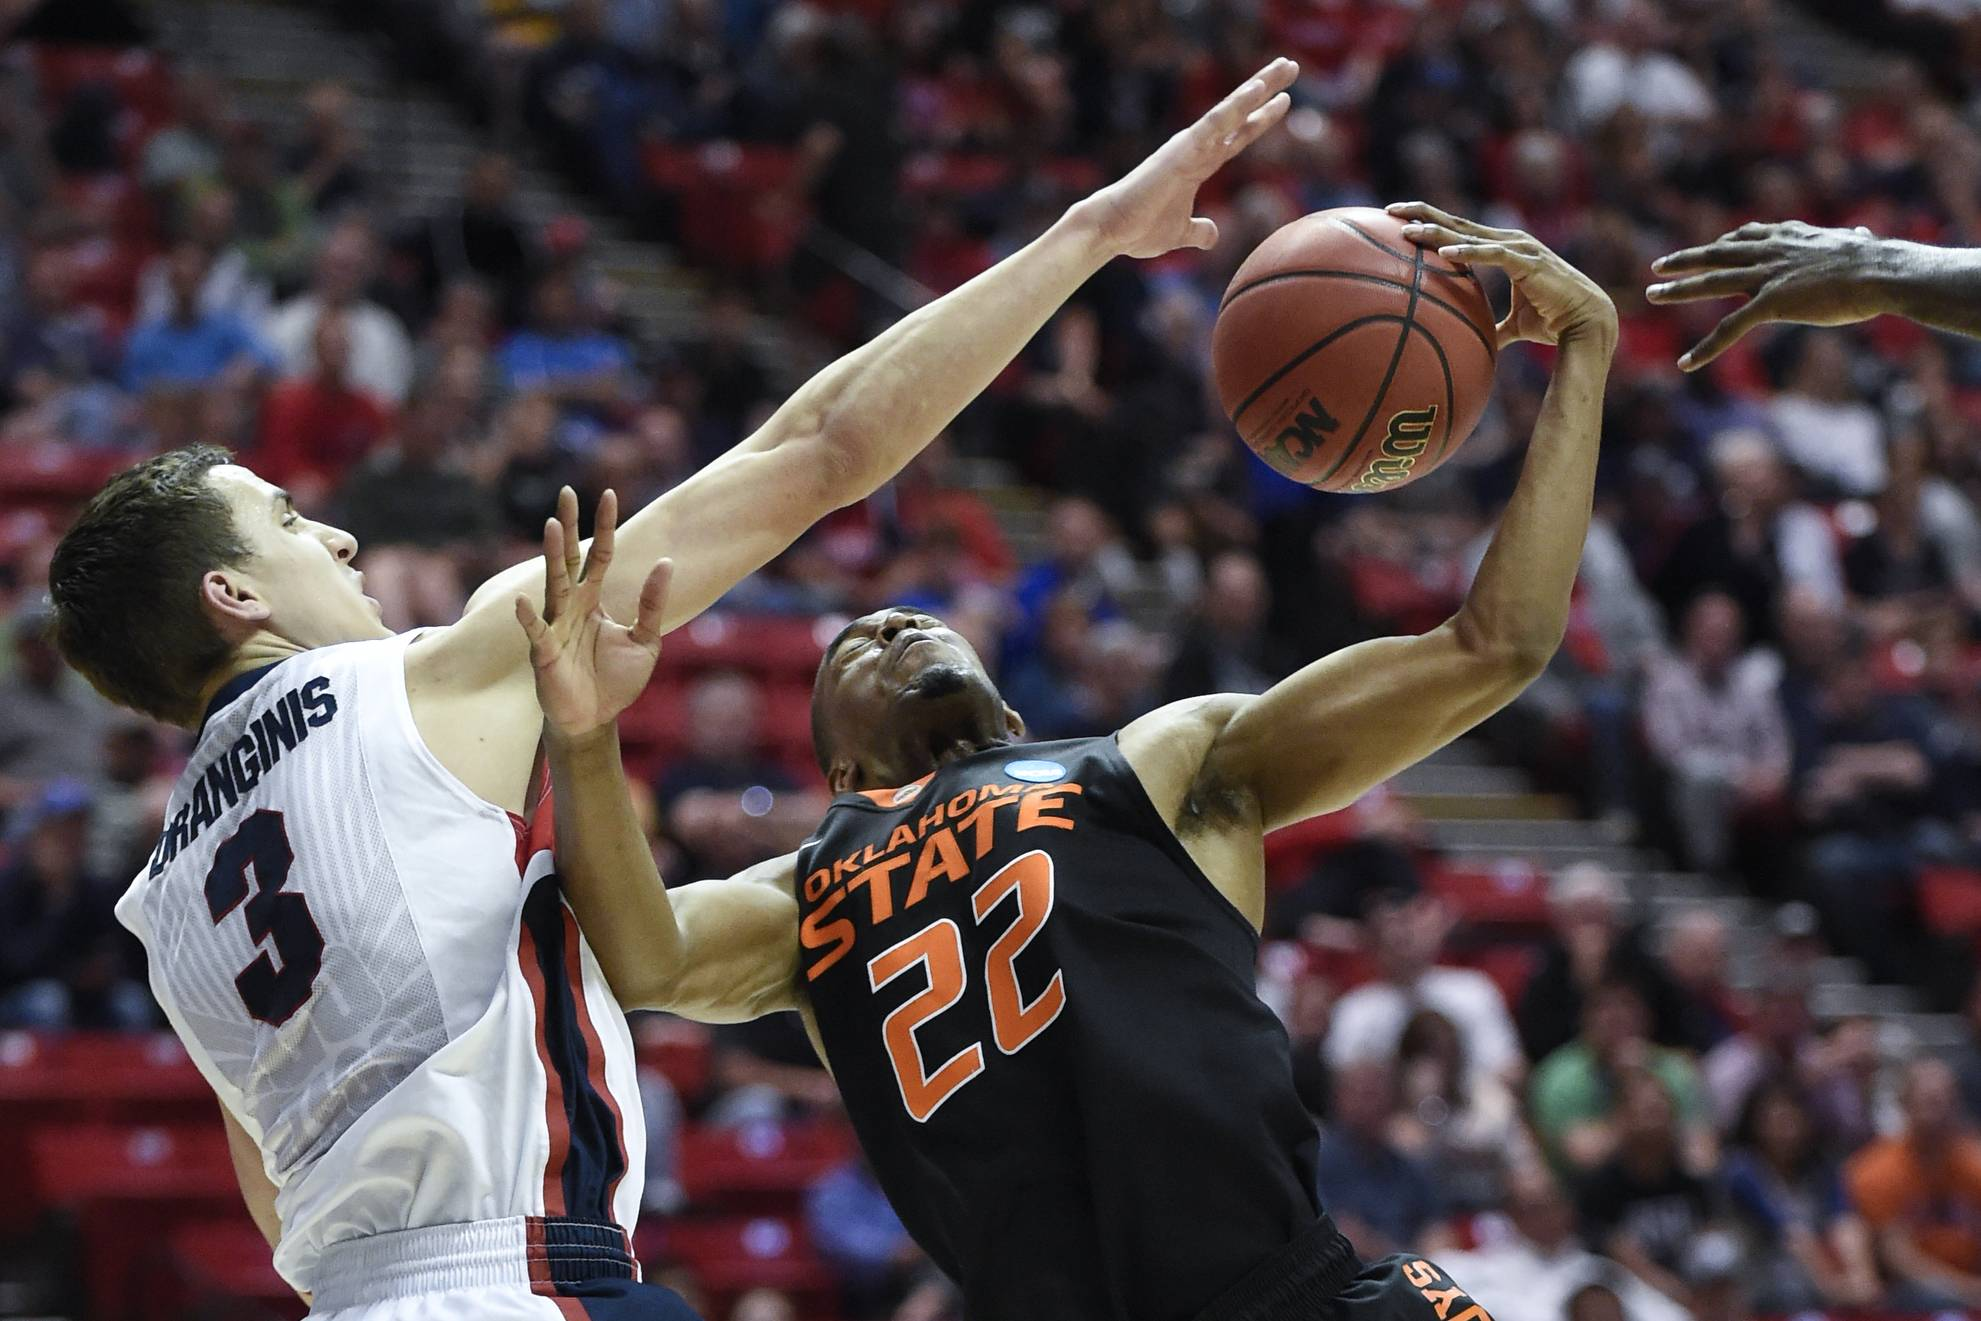 Gonzaga guard Kyle Dranginis, left, blocks a shot by Oklahoma State guard Markel Brown during the second half in a second-round game in the NCAA men's college basketball tournament Friday, March 21, 2014, in San Diego. Gonzaga won 85-77.